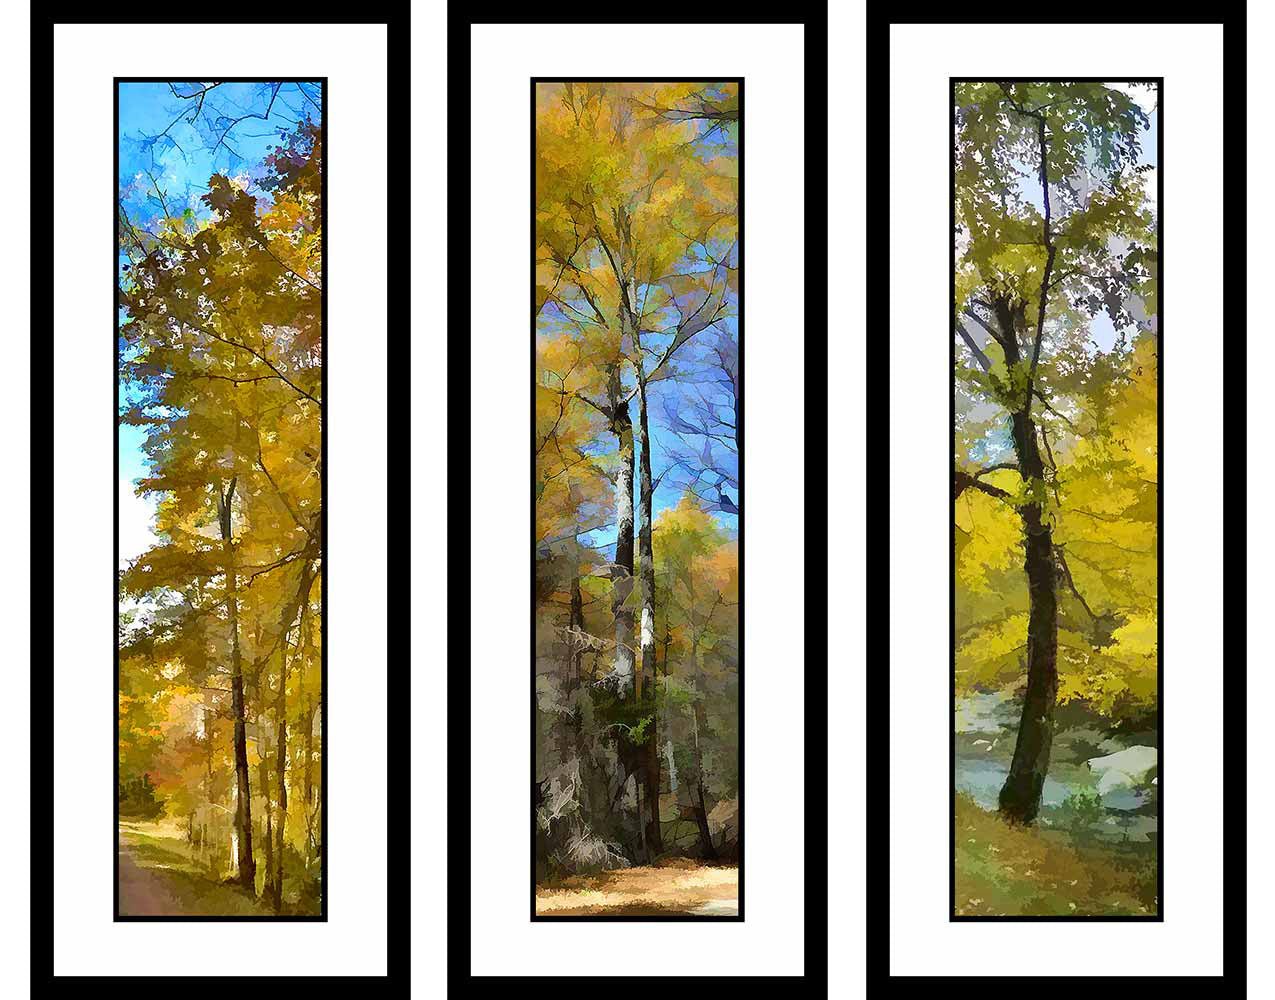 Fall Yellows grouping by Alison Thomas of Serenity Scenes Photography and Digital Art